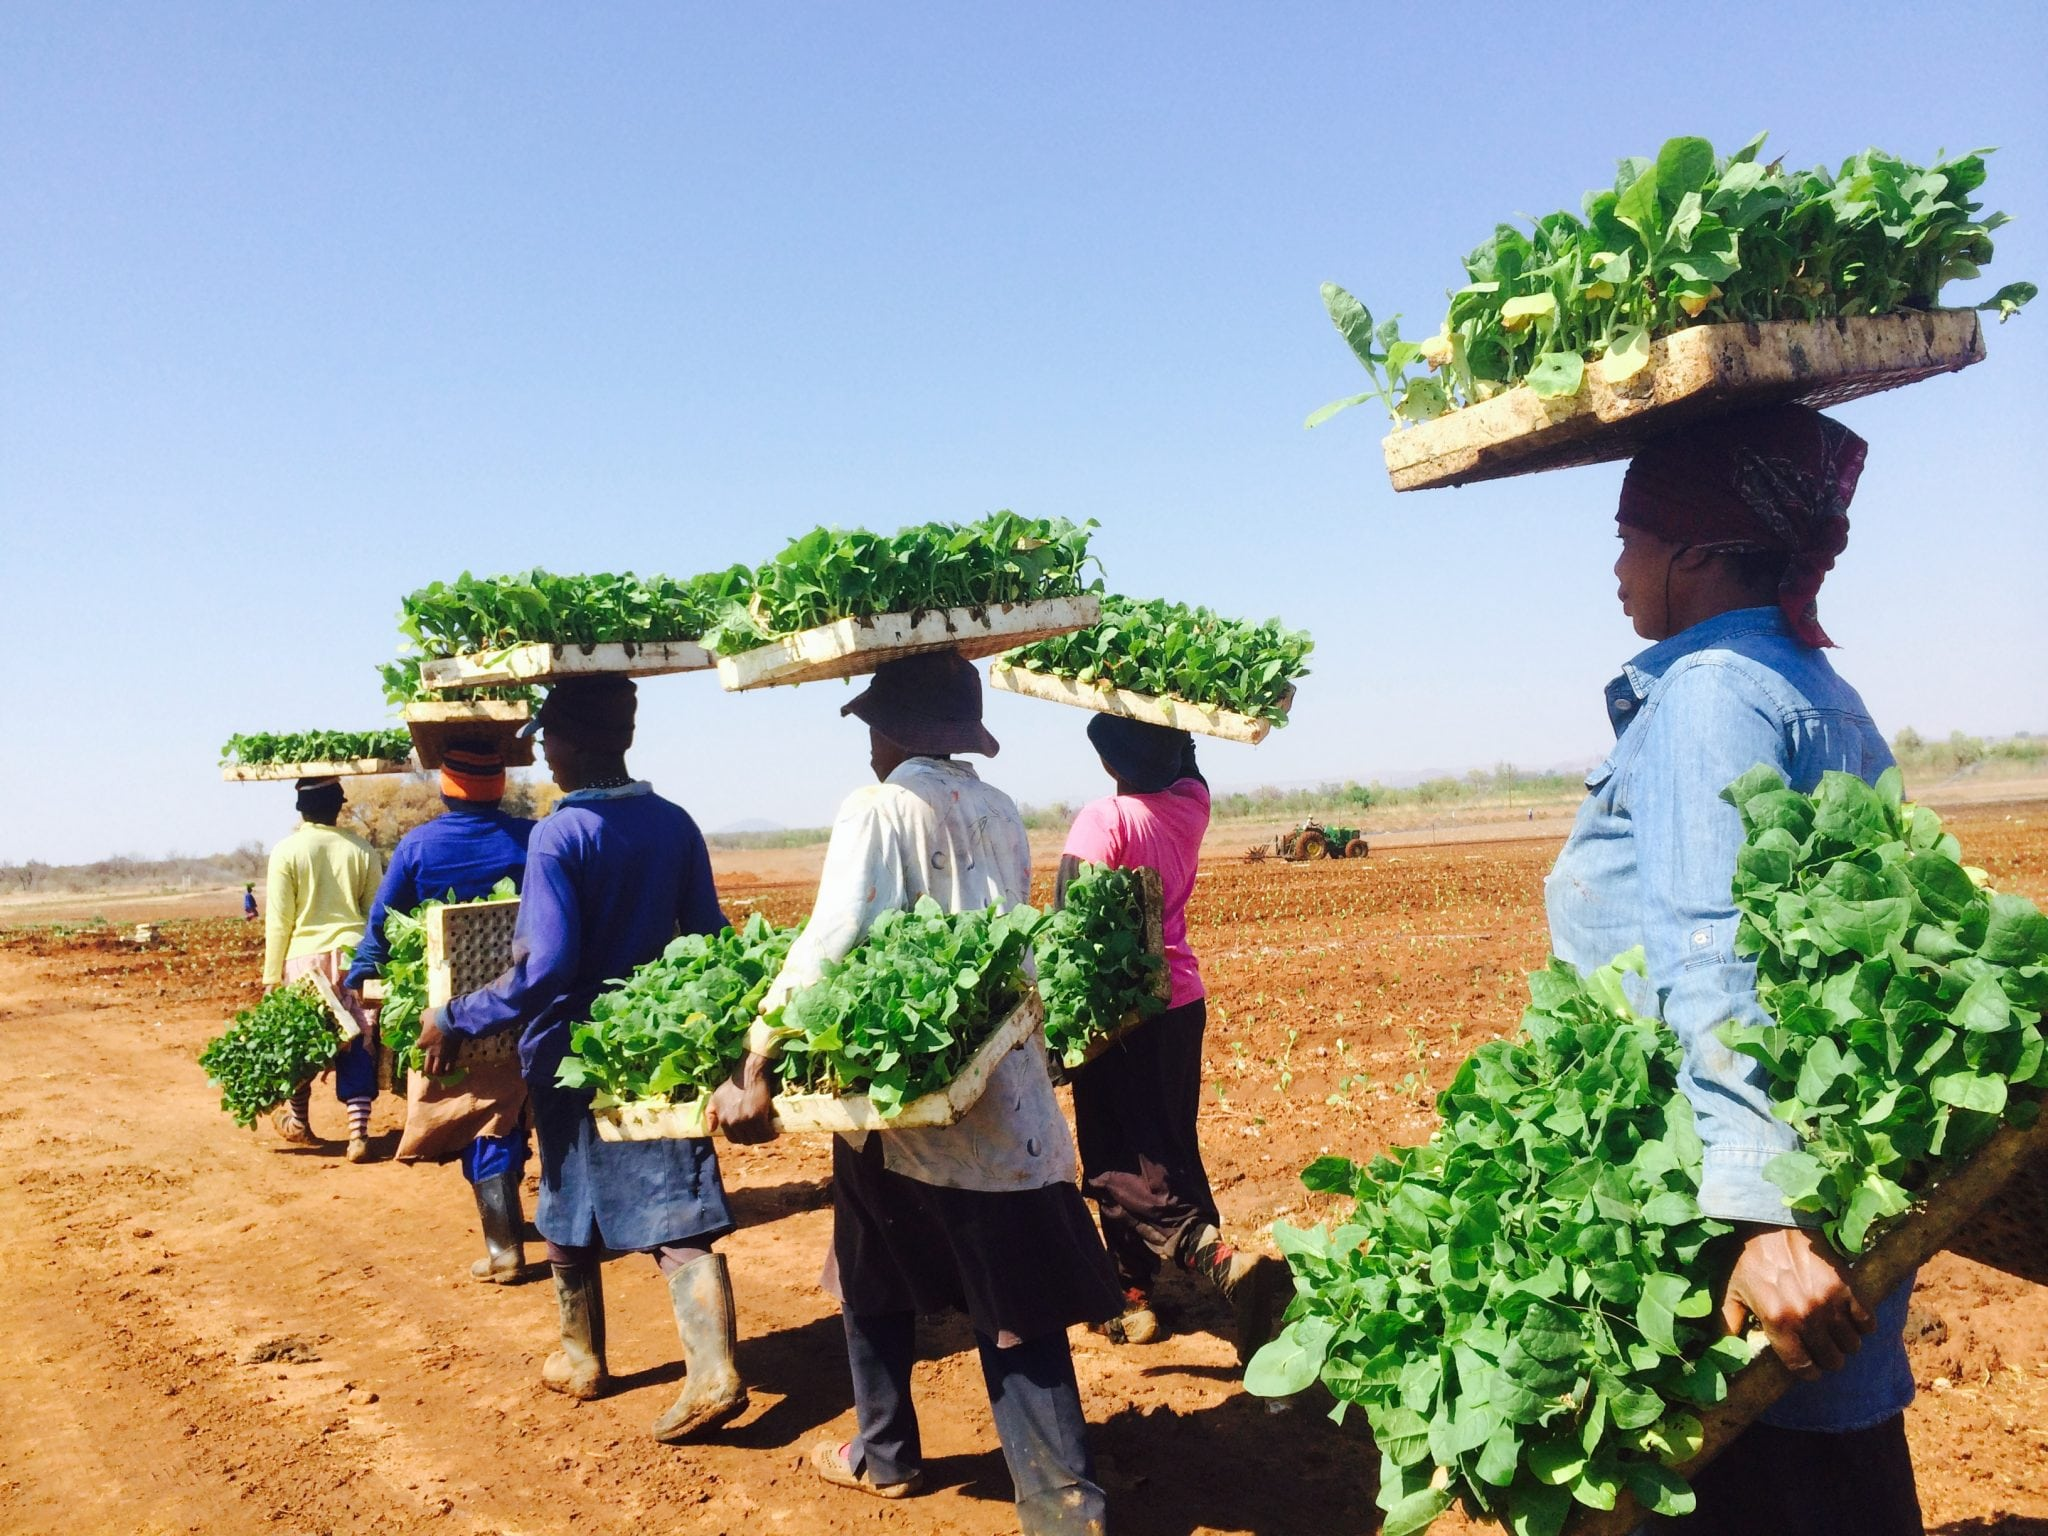 Tobacco farm workers in Marble Hall, South Africa, carry Solaris seedlings from a nursery to the field